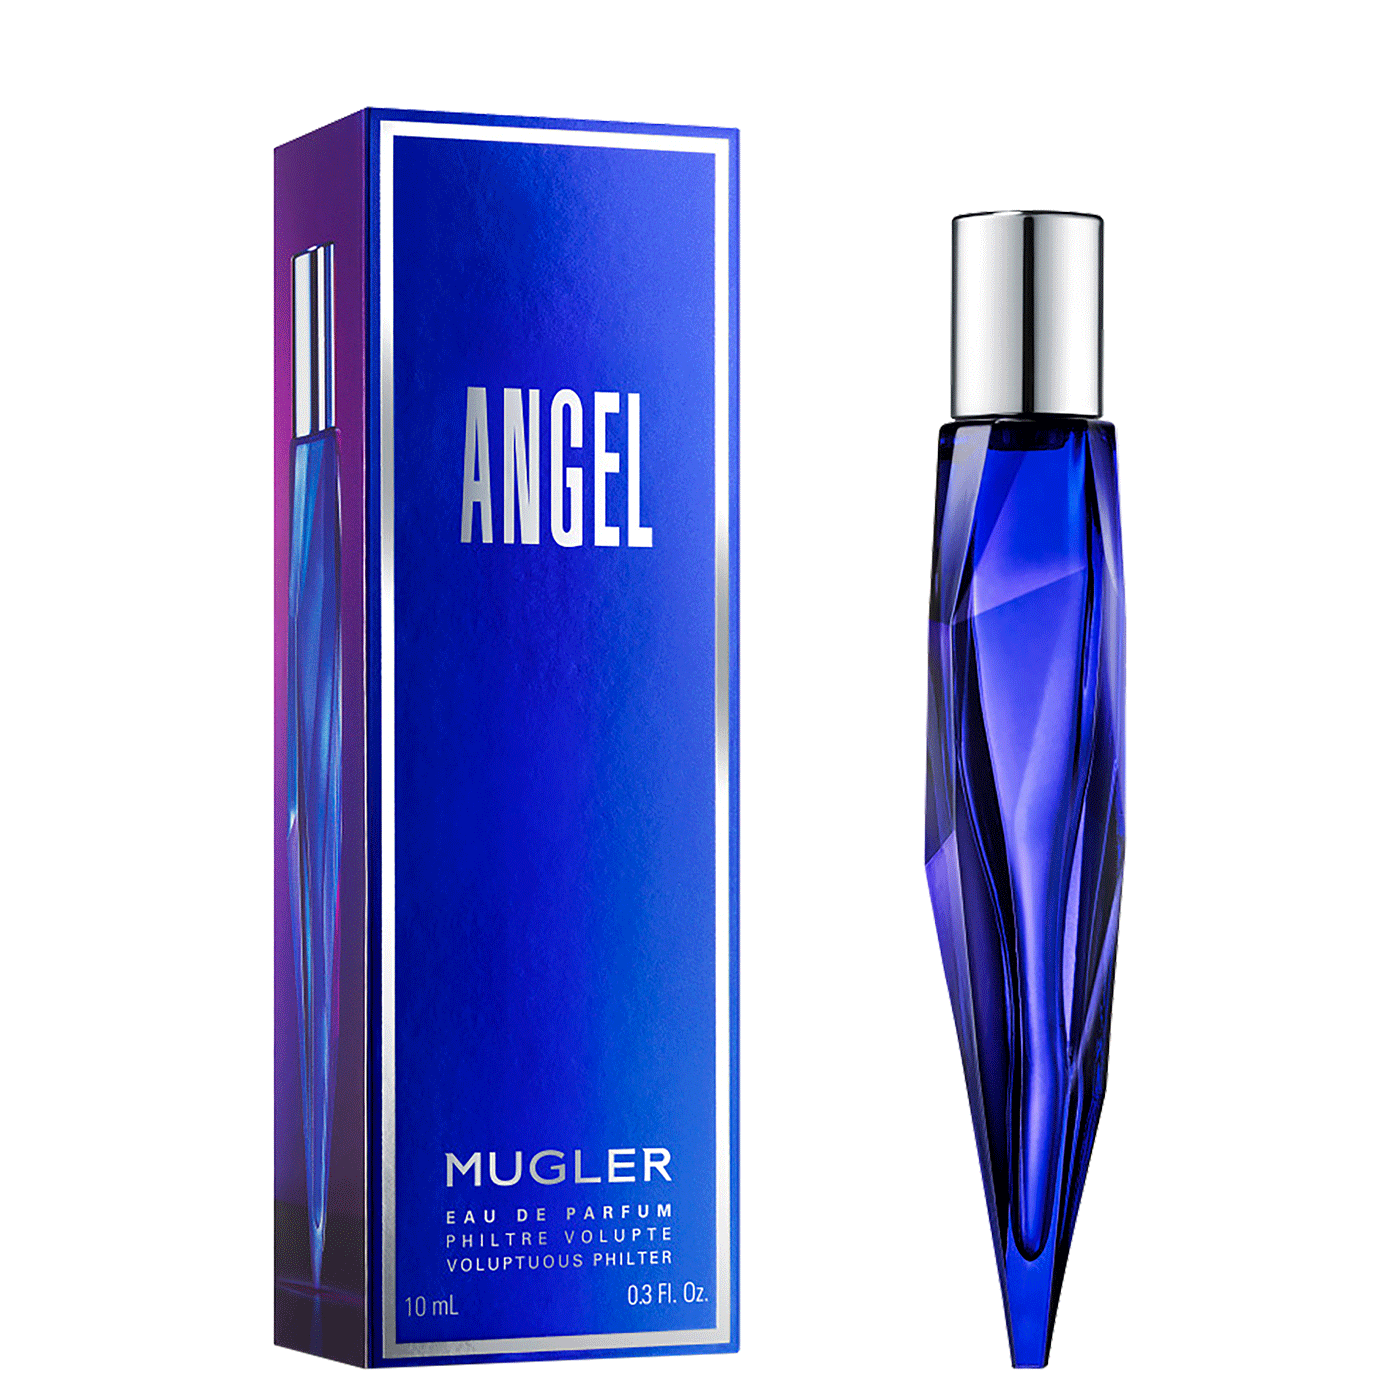 Thierry Mugler Angel EDP Voluptuous Philter 10ml